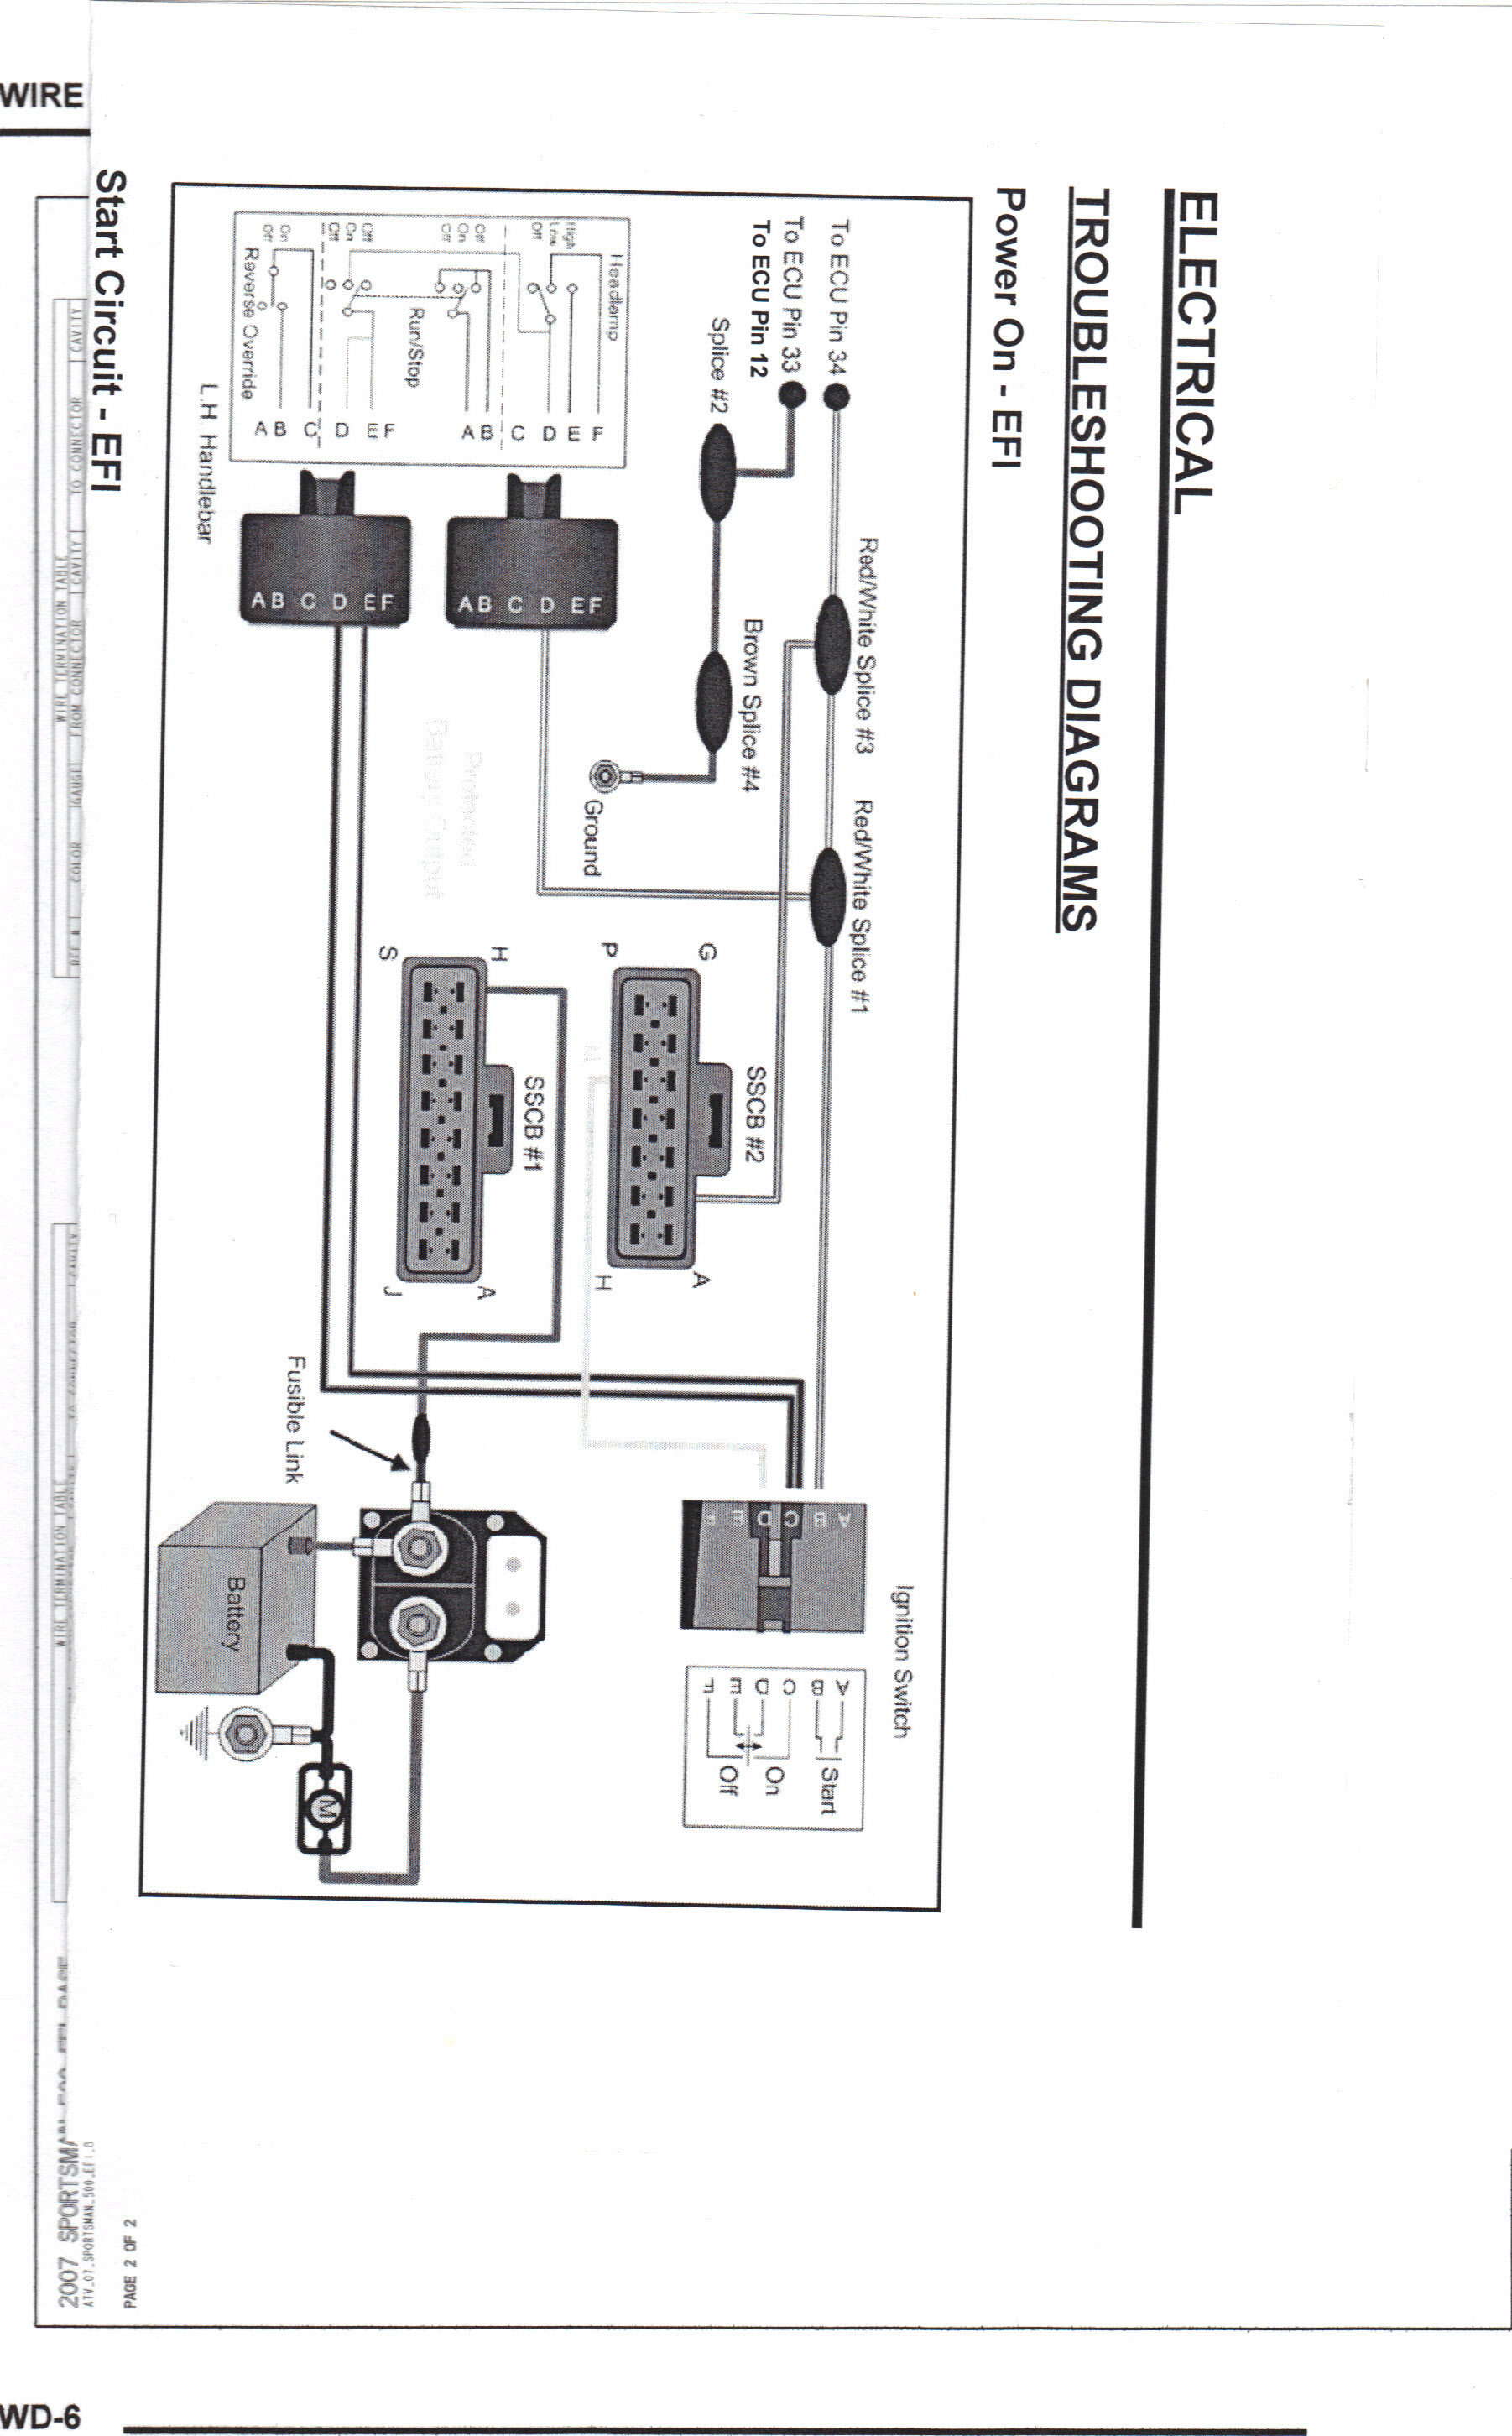 hight resolution of 2005 polaris sportsman 500 ho wiring diagram schematic diagrams rh ogmconsulting co ho ballast wiring diagram